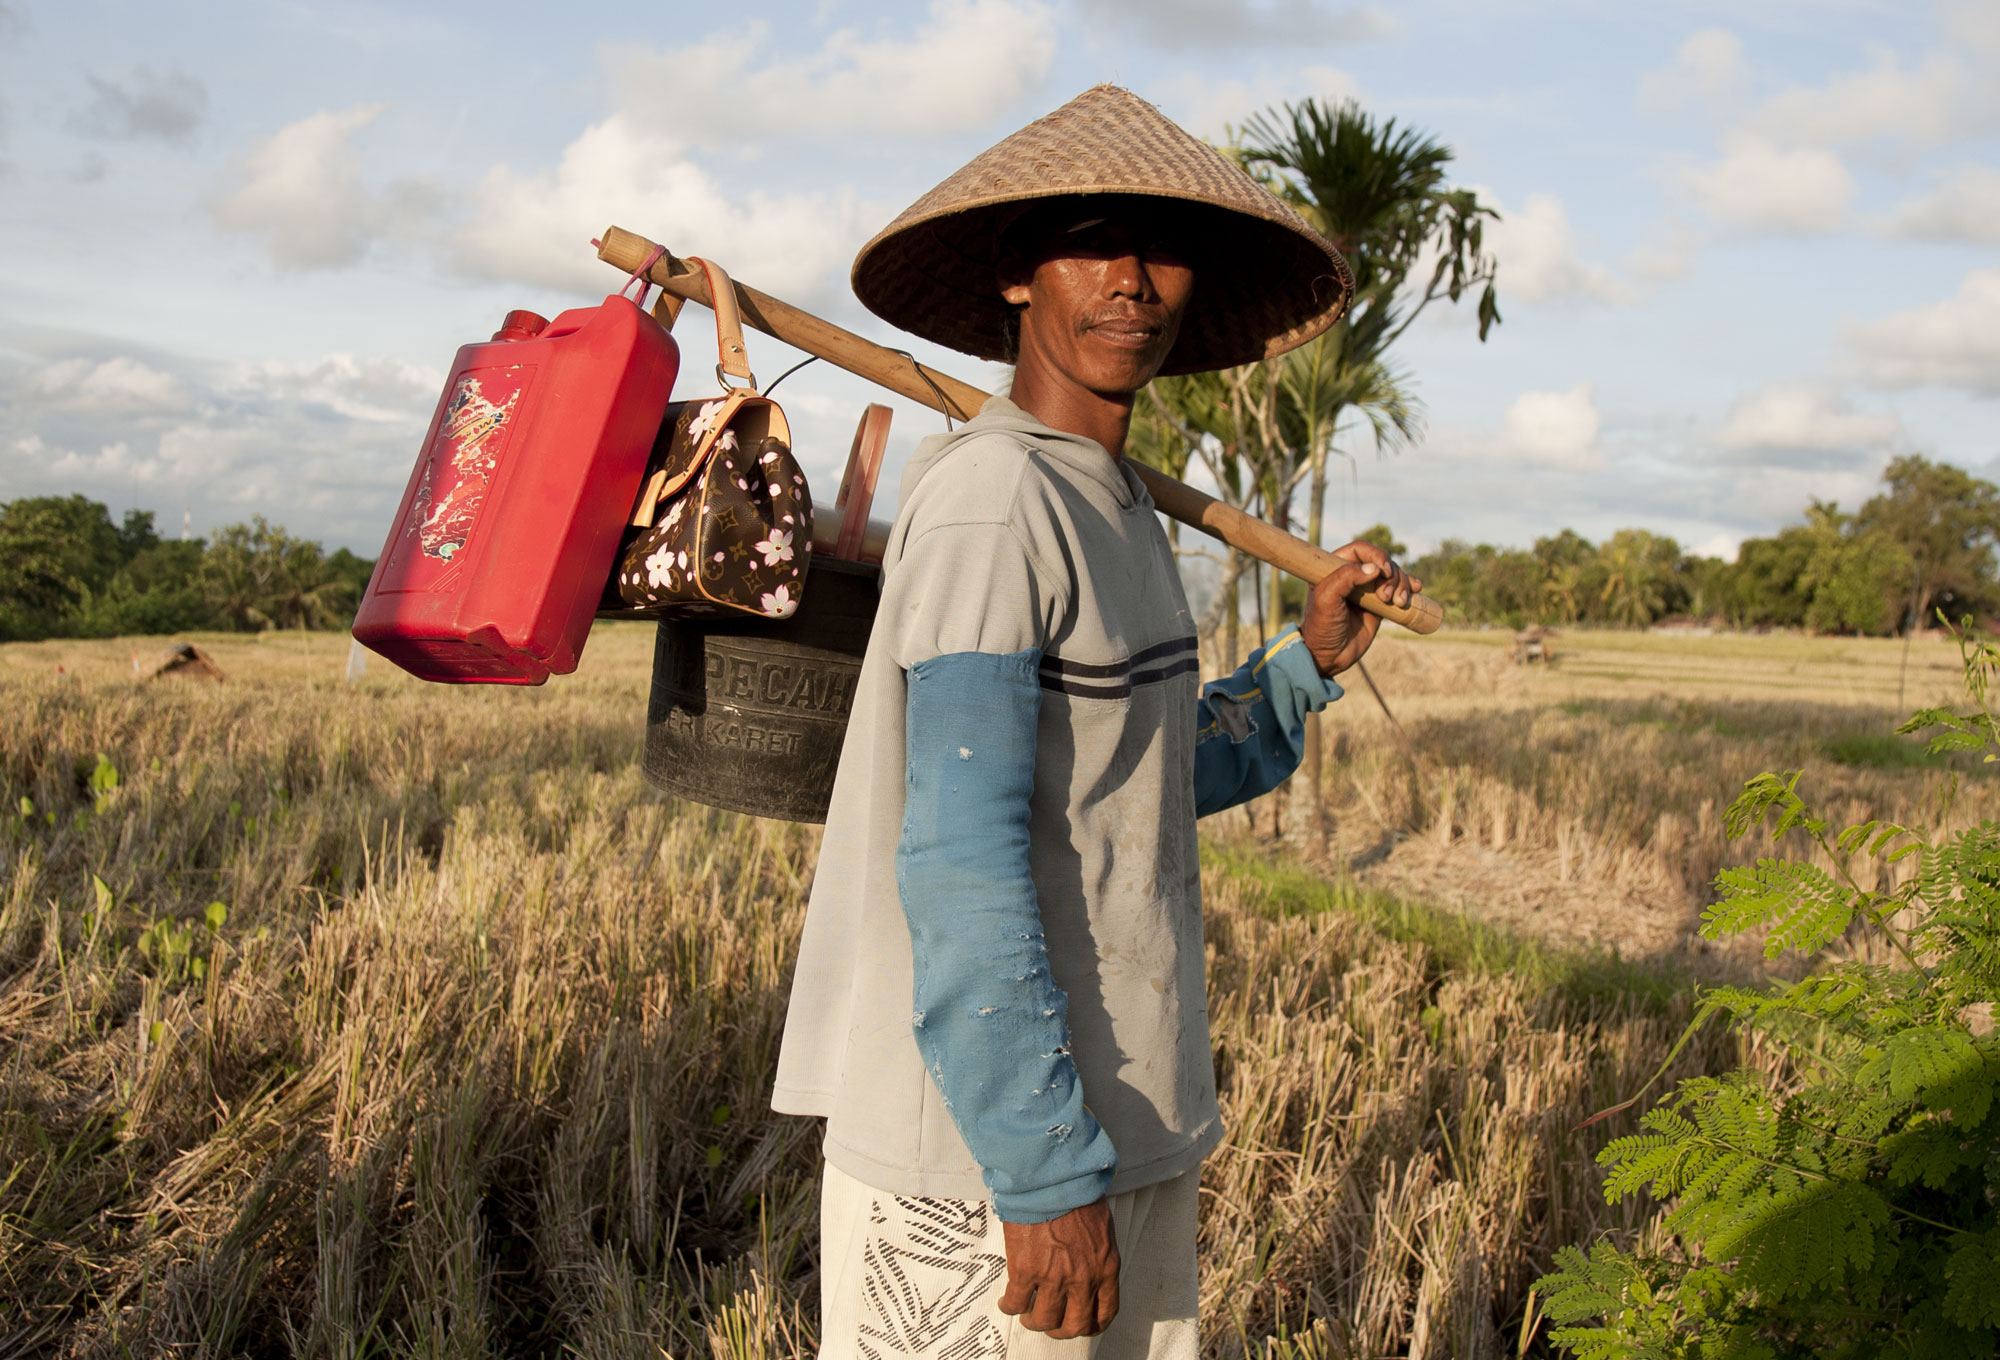 Farmer in Bali carrying Louis Vuitton bag